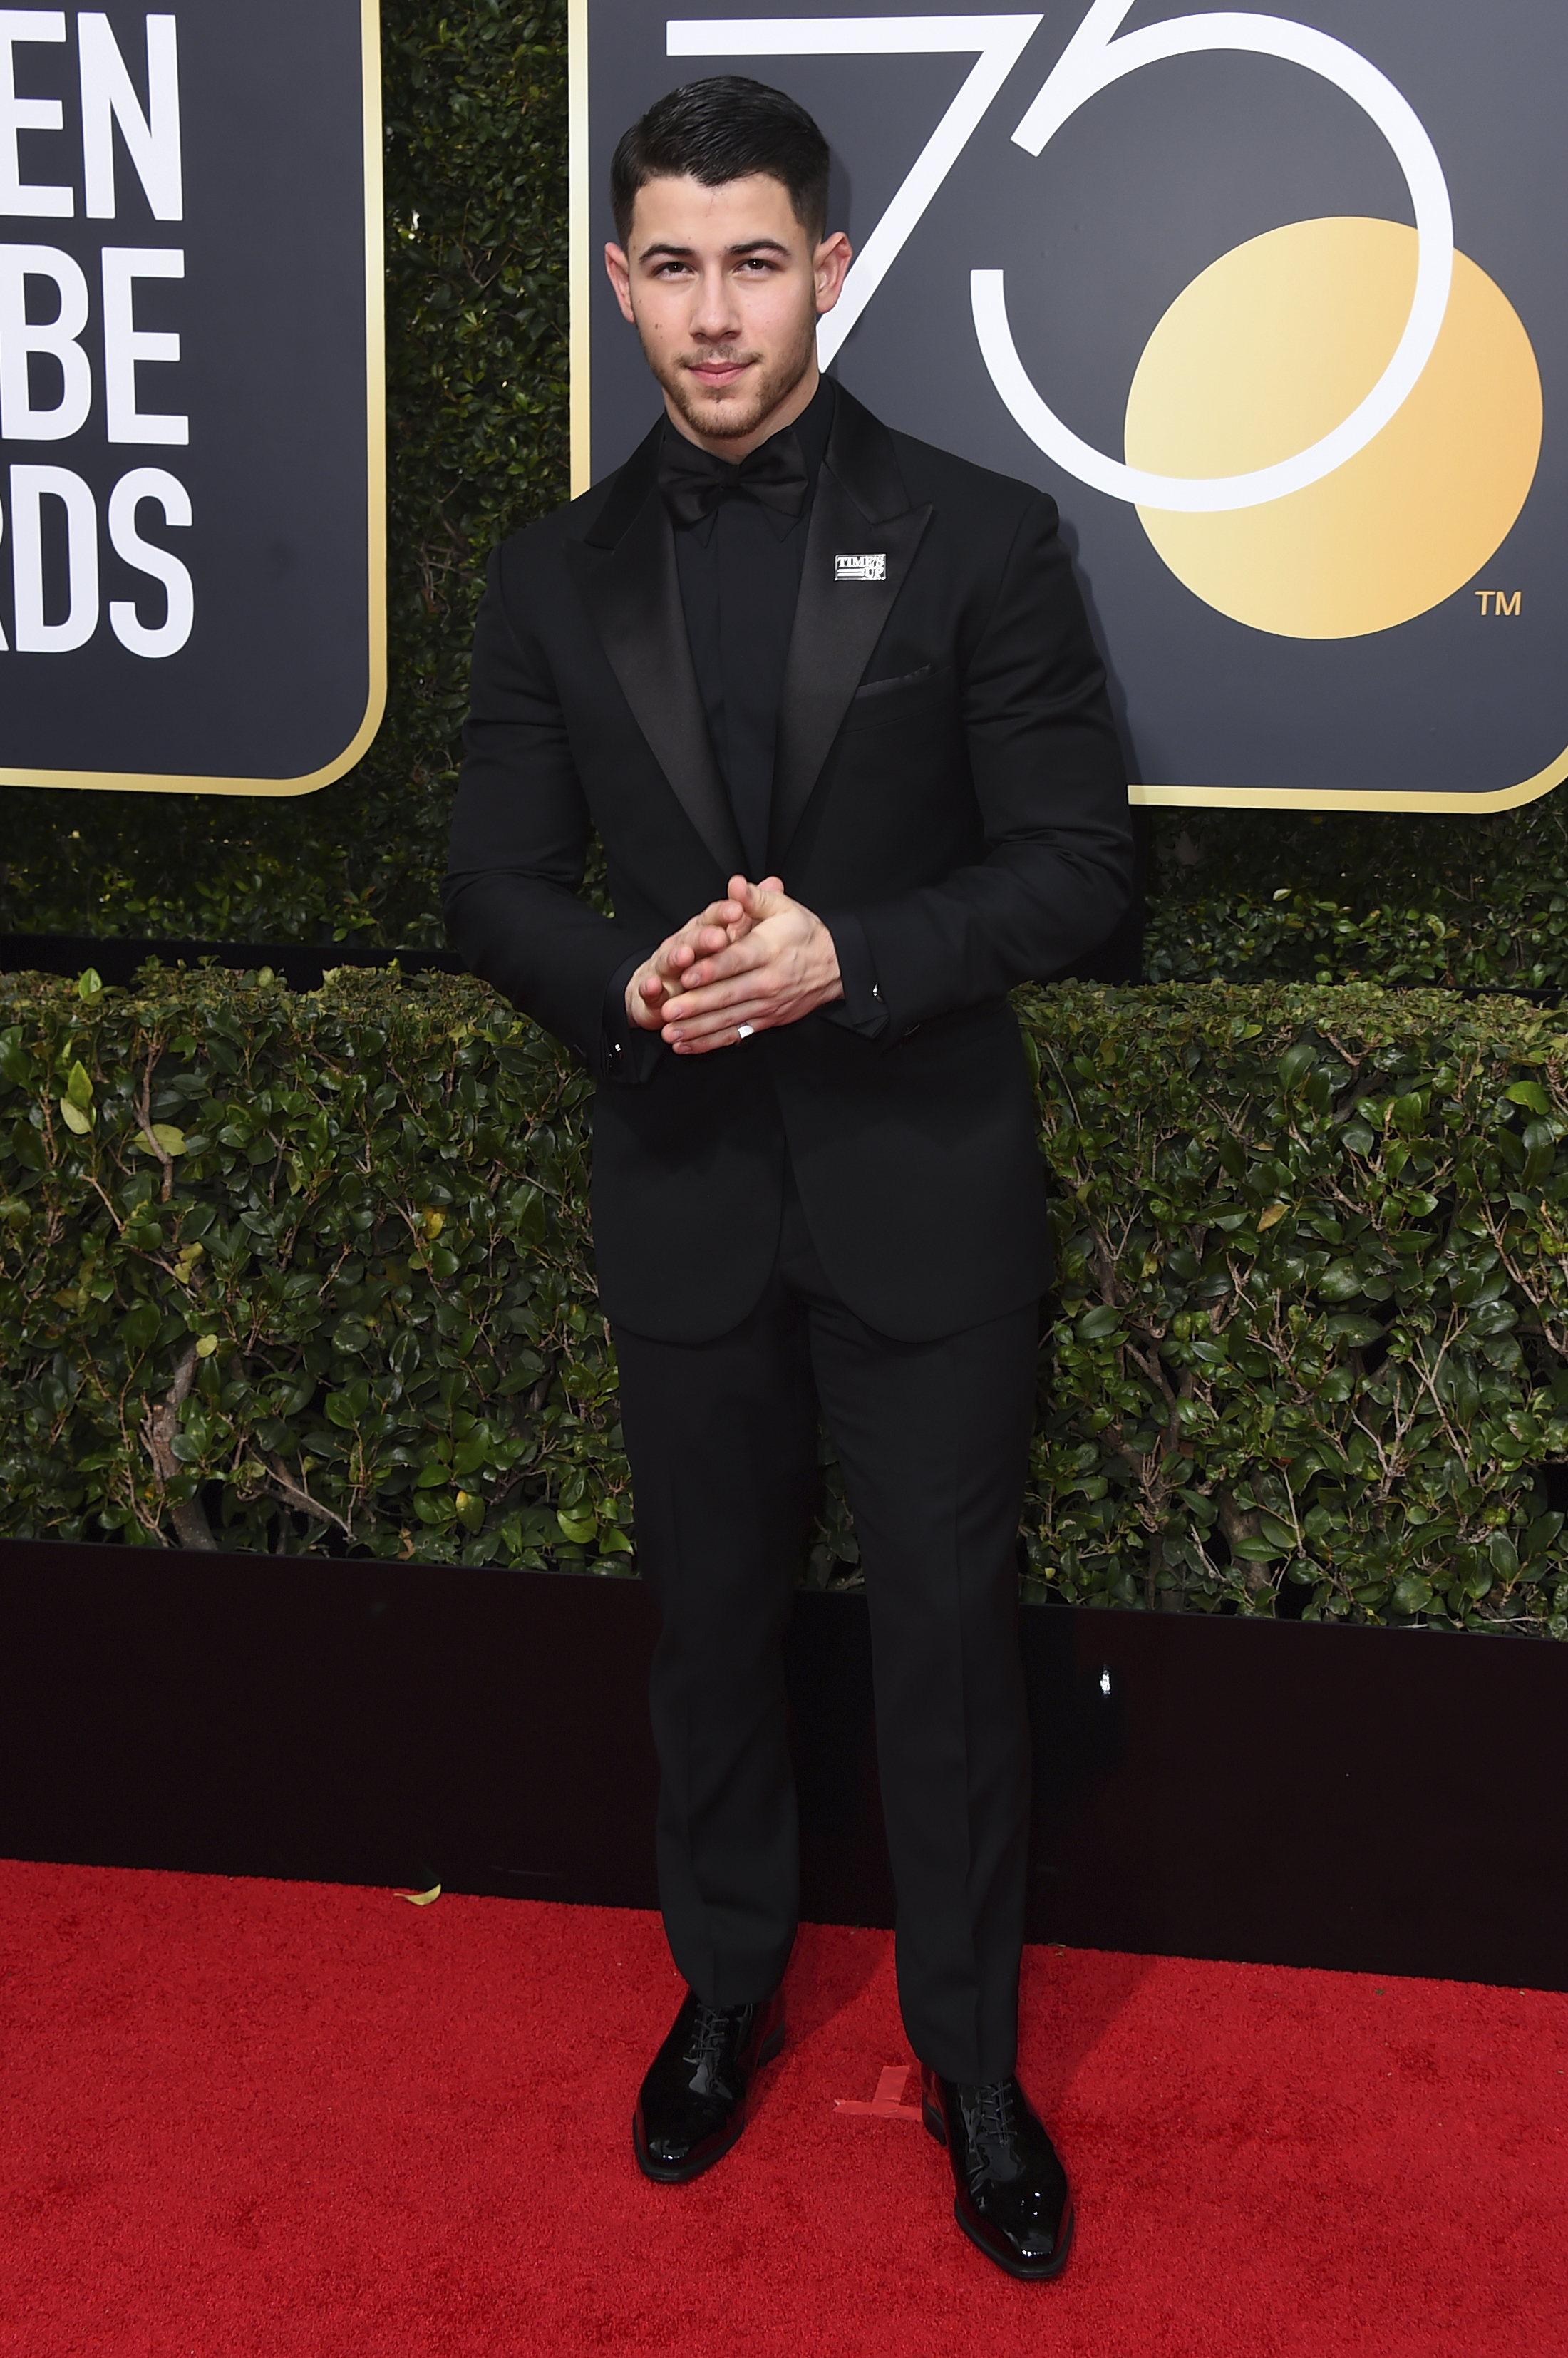 <div class='meta'><div class='origin-logo' data-origin='AP'></div><span class='caption-text' data-credit='Jordan Strauss/Invision/AP'>Nick Jonas arrives at the 75th annual Golden Globe Awards at the Beverly Hilton Hotel on Sunday, Jan. 7, 2018, in Beverly Hills, Calif. (Photo by Jordan Strauss/Invision/AP)</span></div>